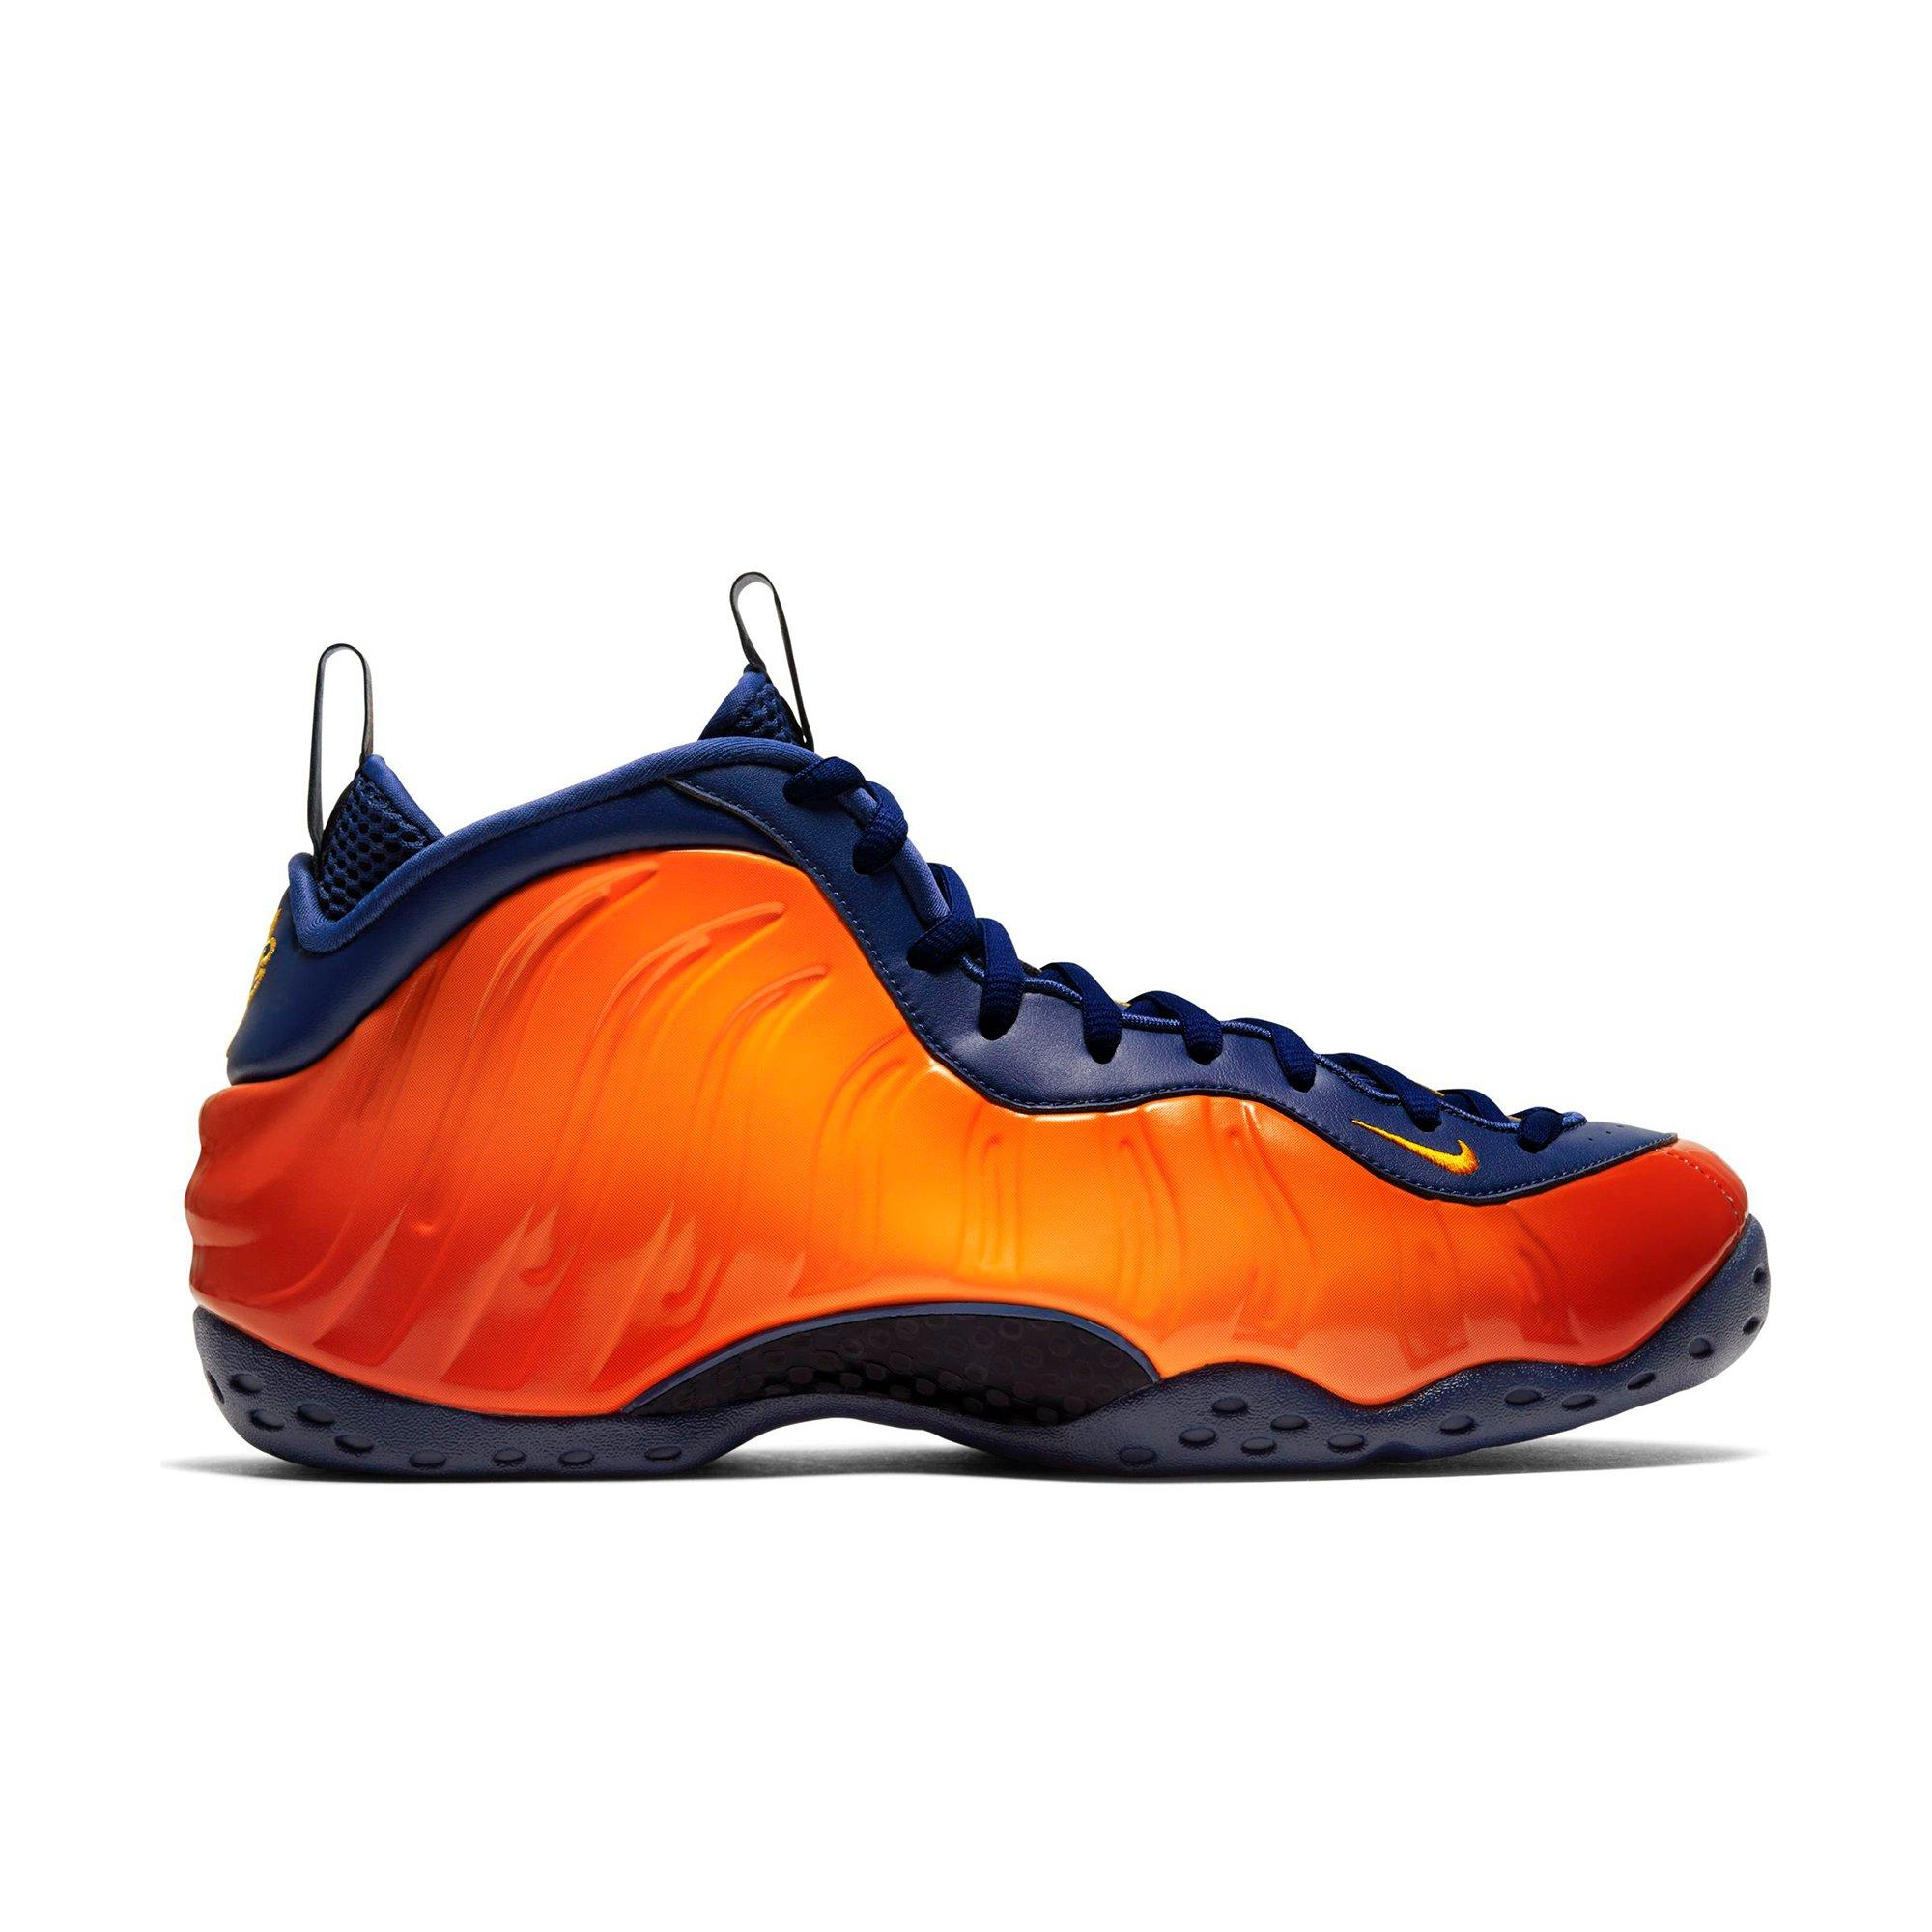 Nike Air Foamposite One Weatherman vs. Nike Air ... Notariato